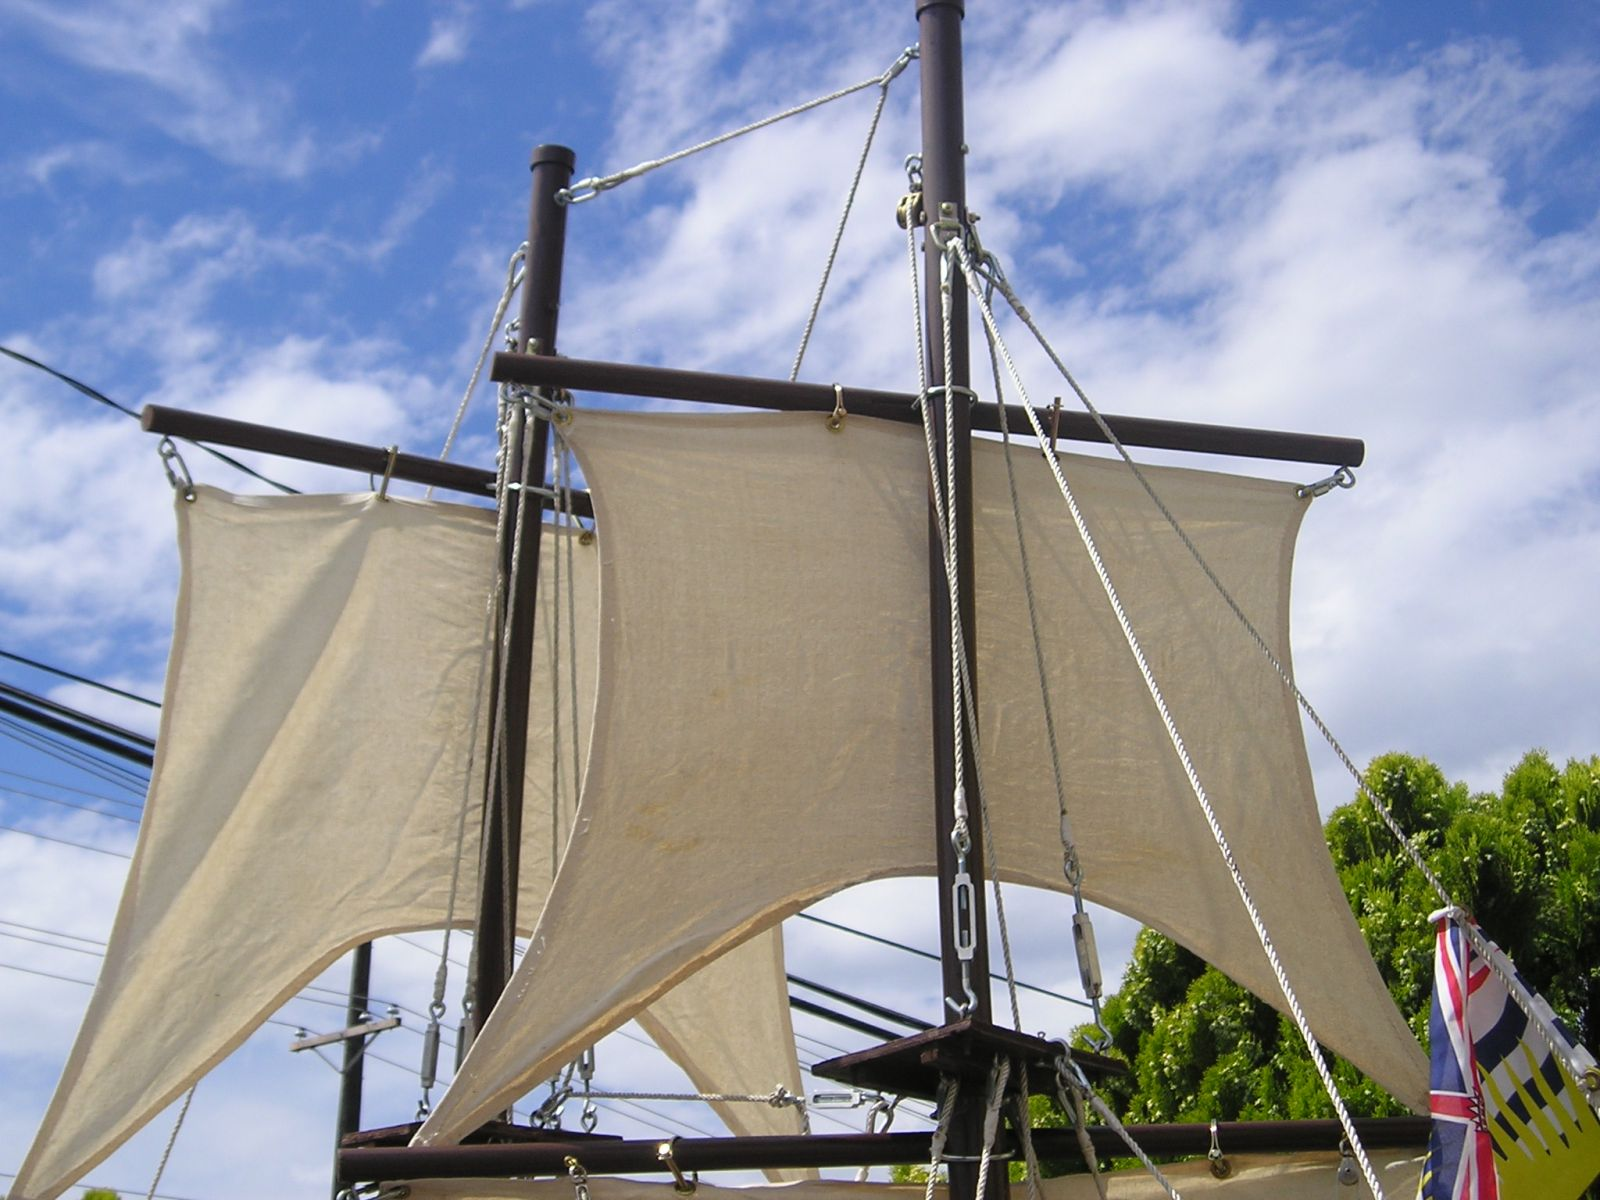 Mini Brig Square Sail